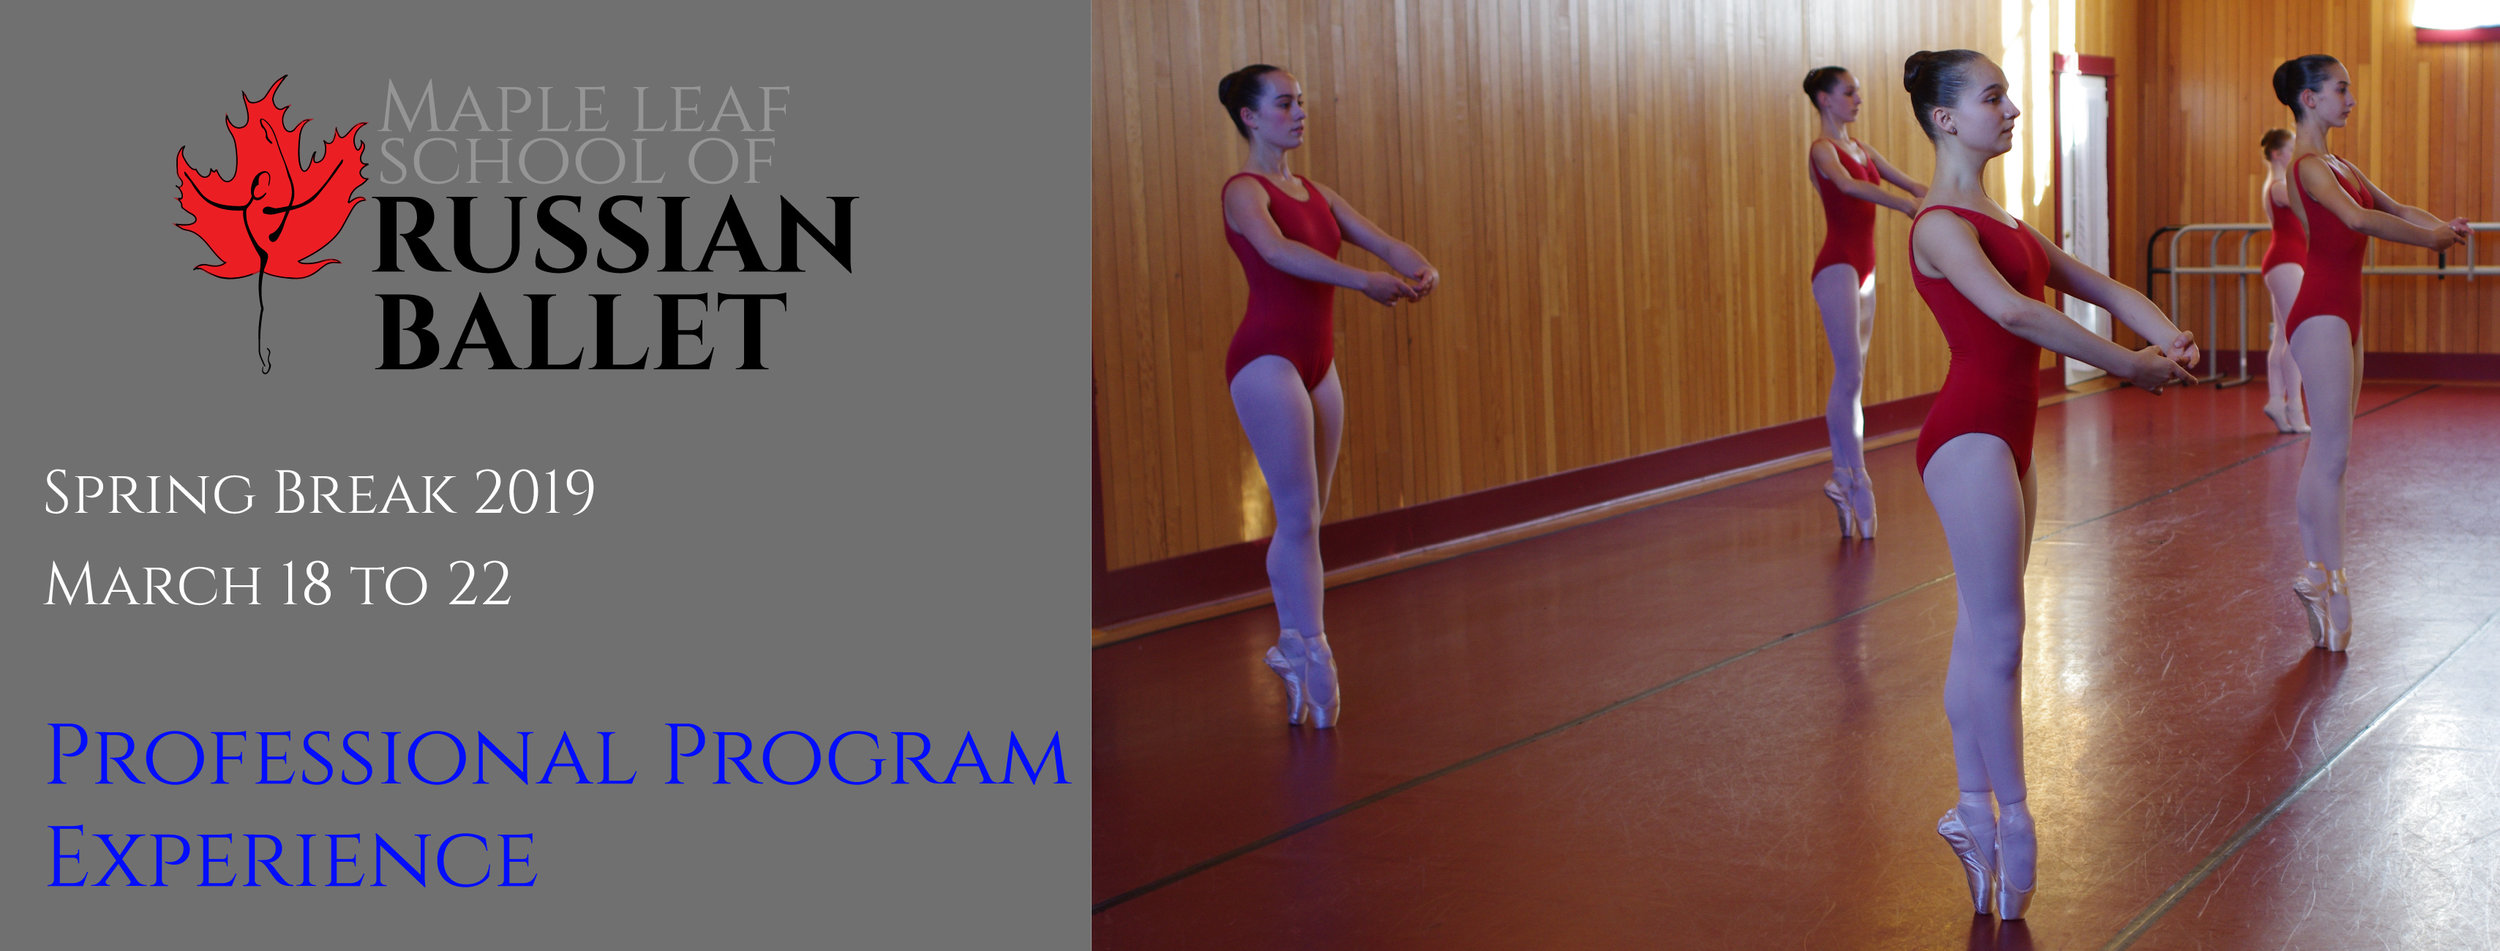 Professional Program Spring Experience SPring 2019-01.jpg